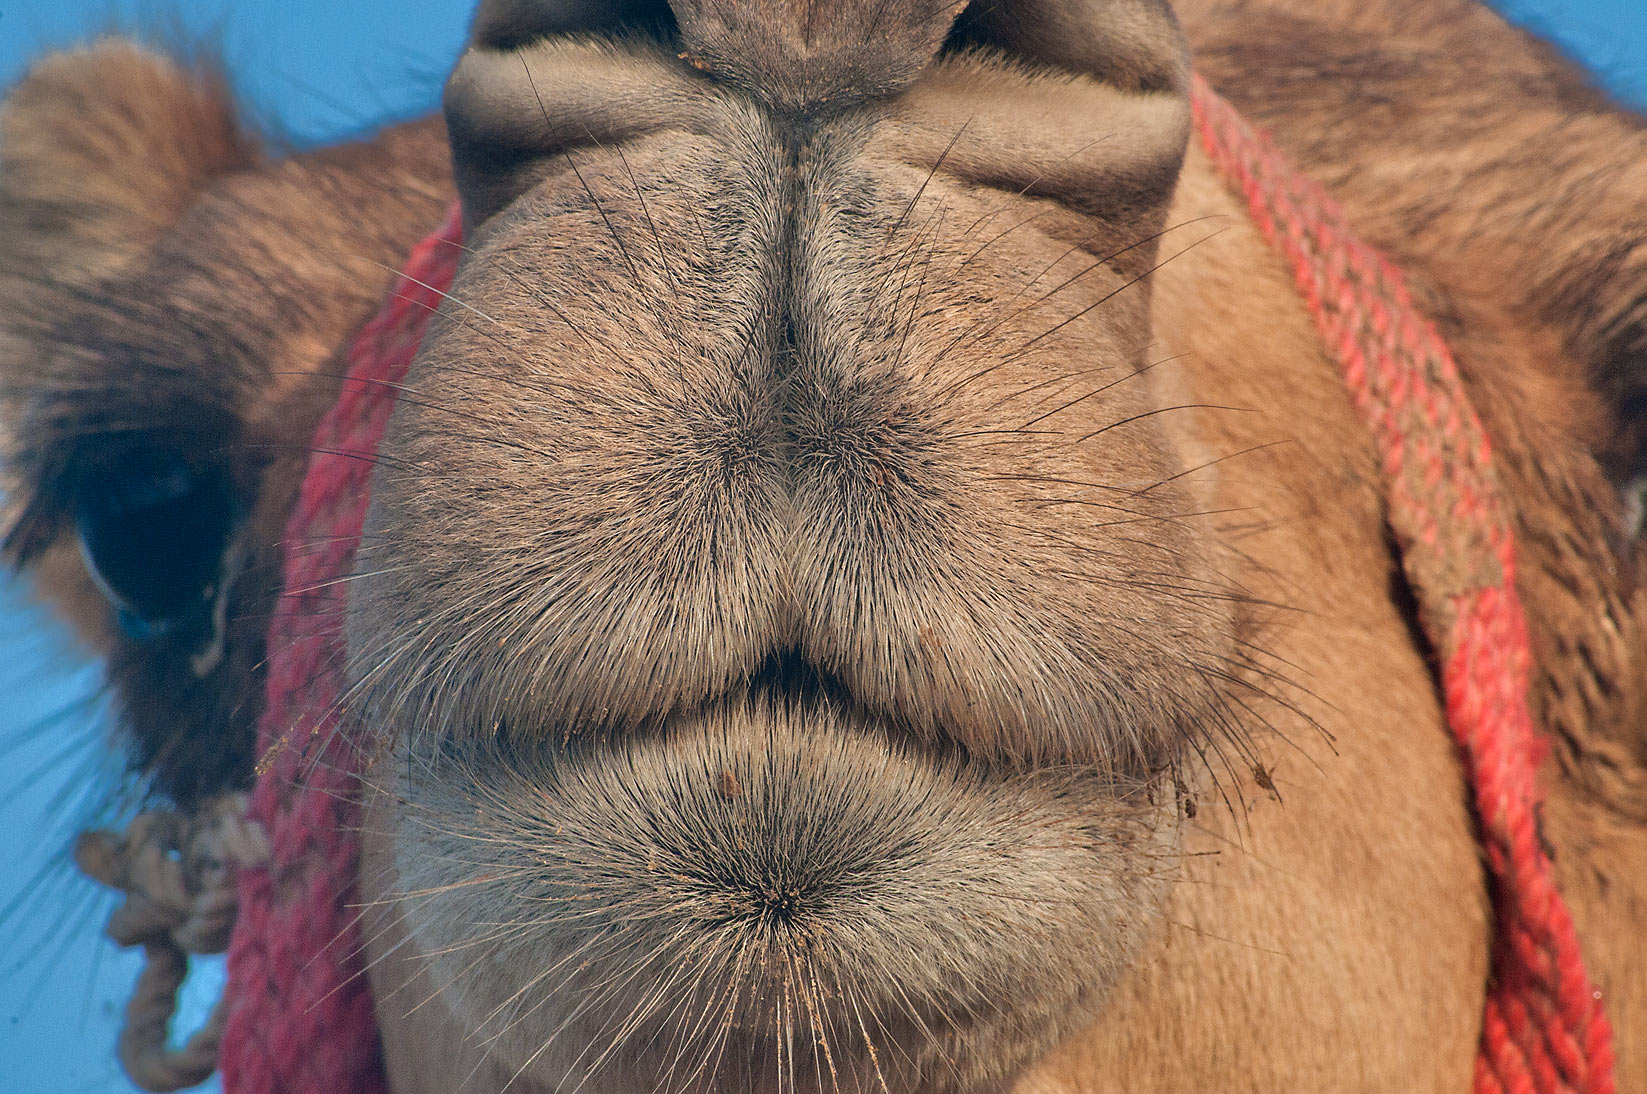 Snout of a camel at Camel Market (Souq) in Wholesale Markets area. Doha, Qatar